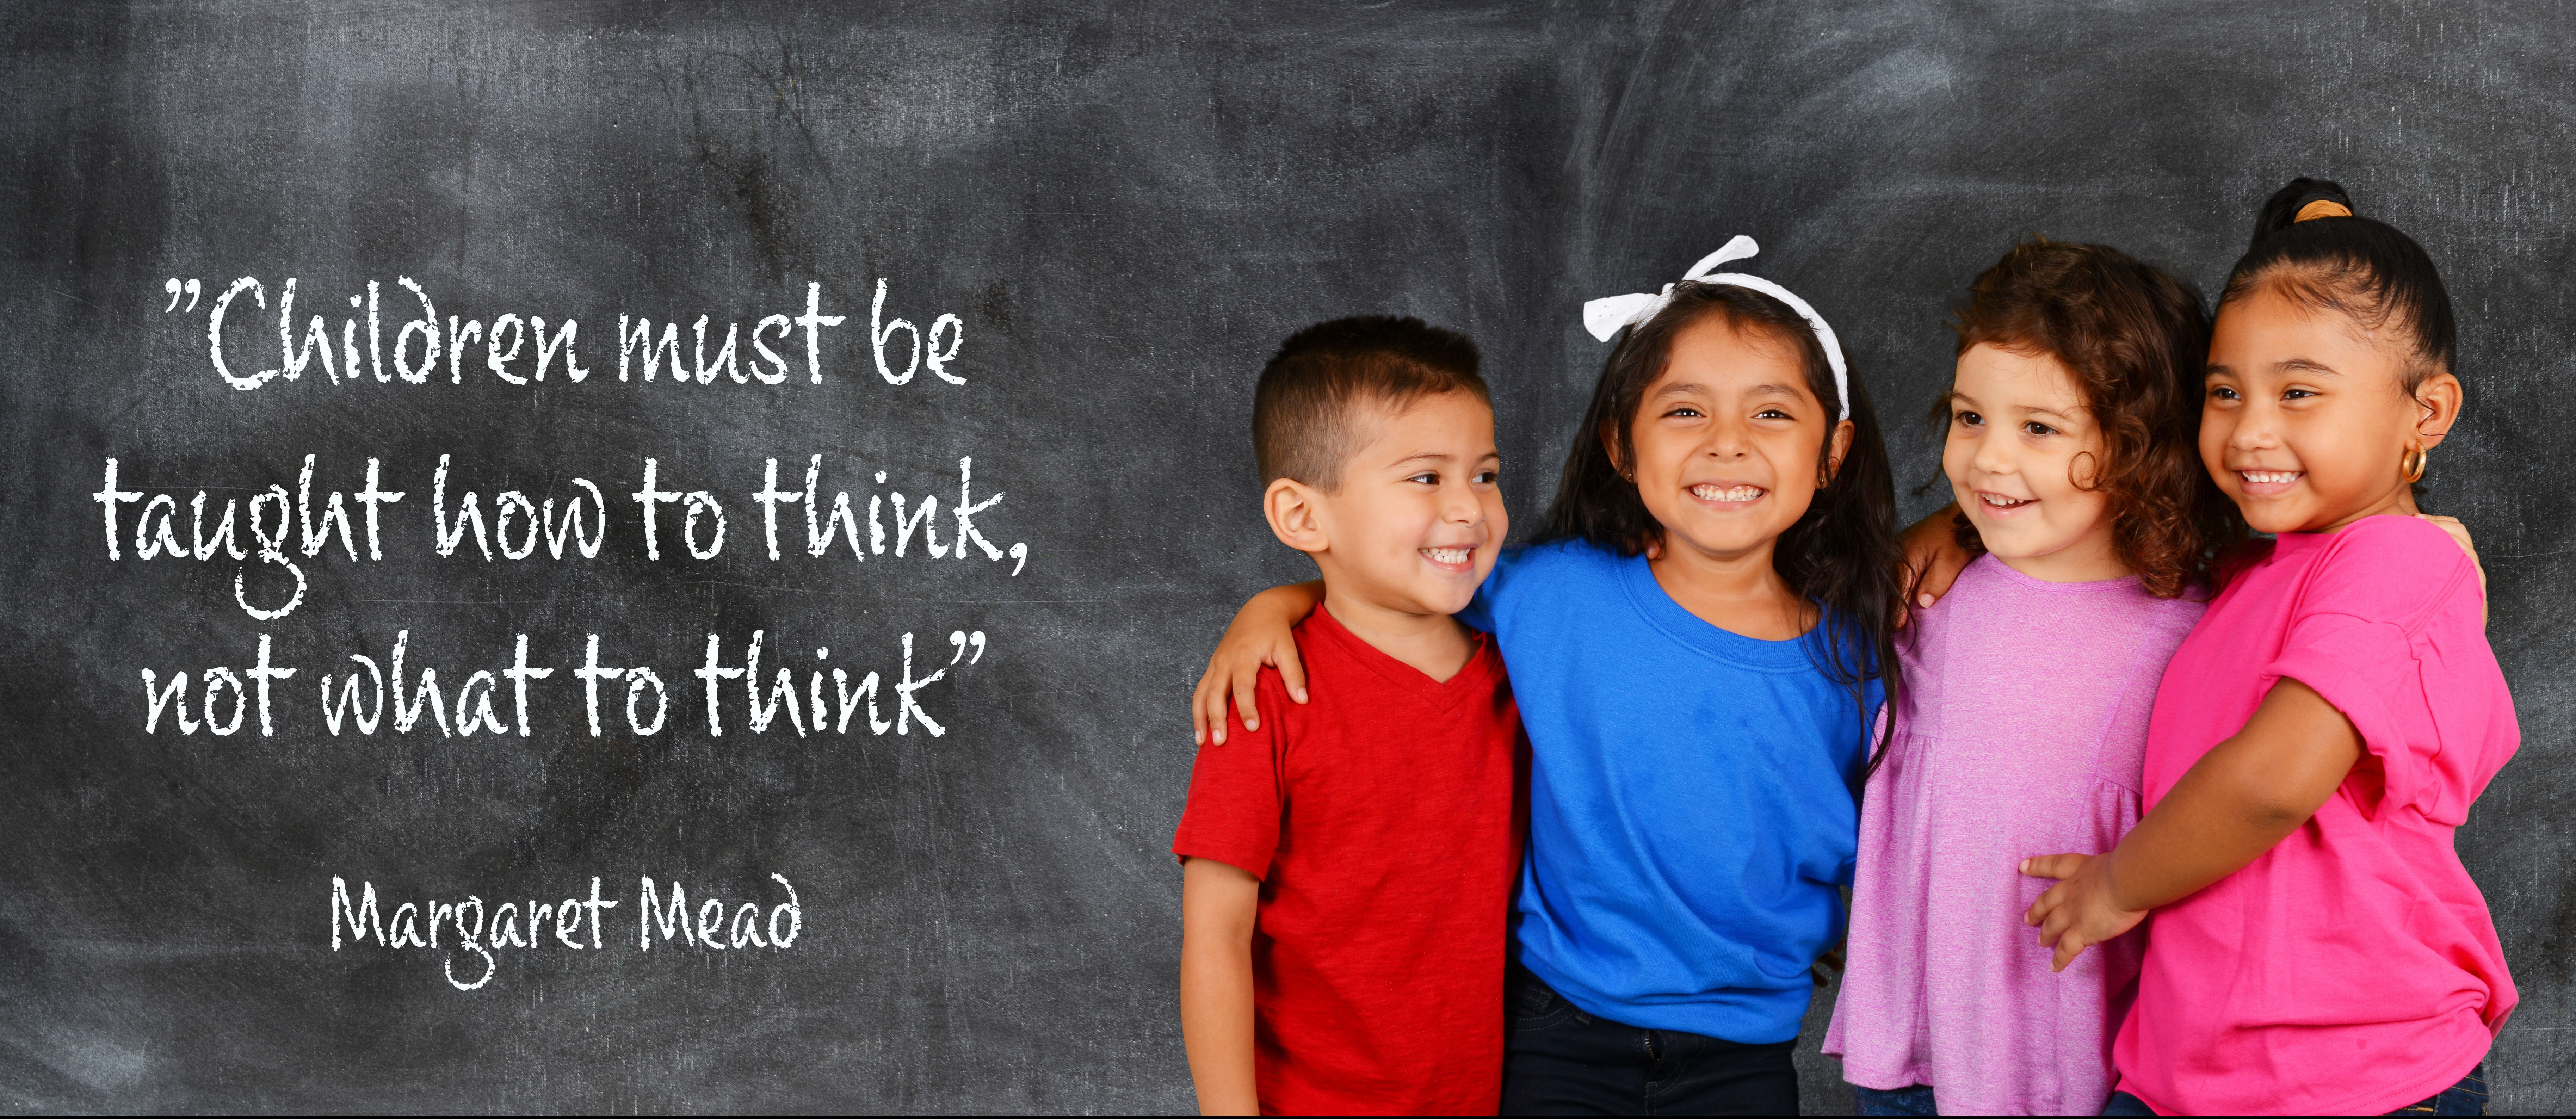 """Children must be taught how to think, not what to think"""